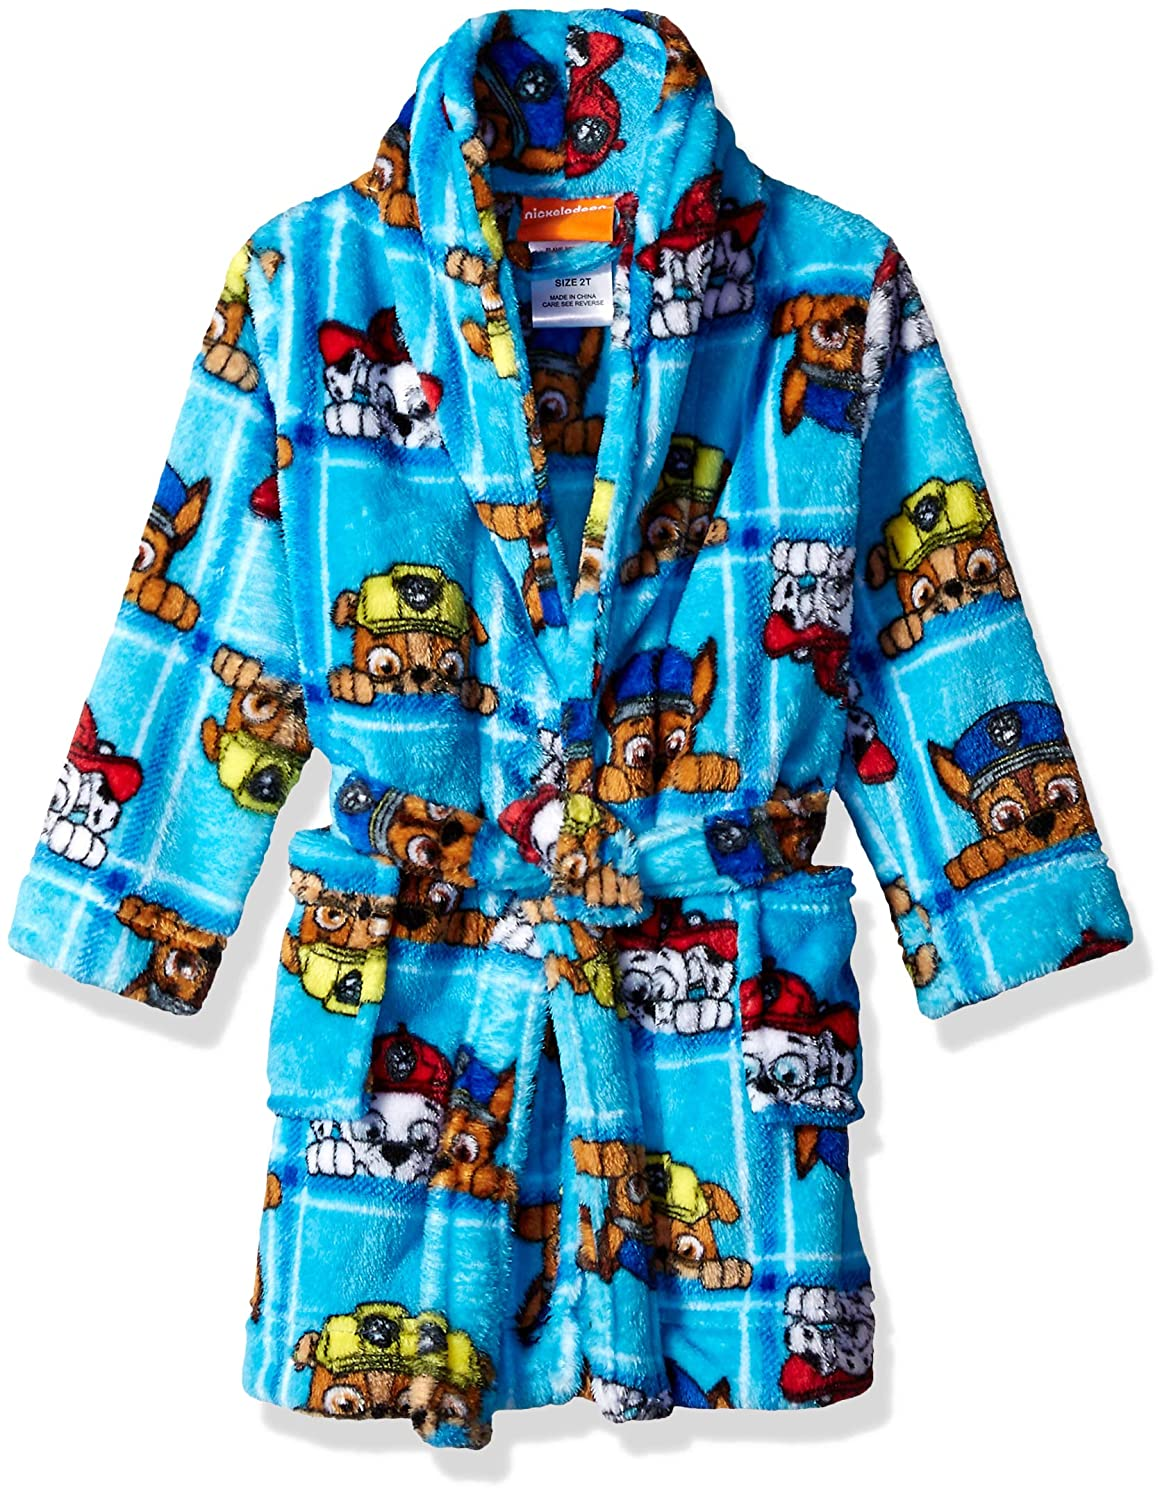 Nickelodeon Boys' Toddler Paw Patrol Luxe Plush Robe